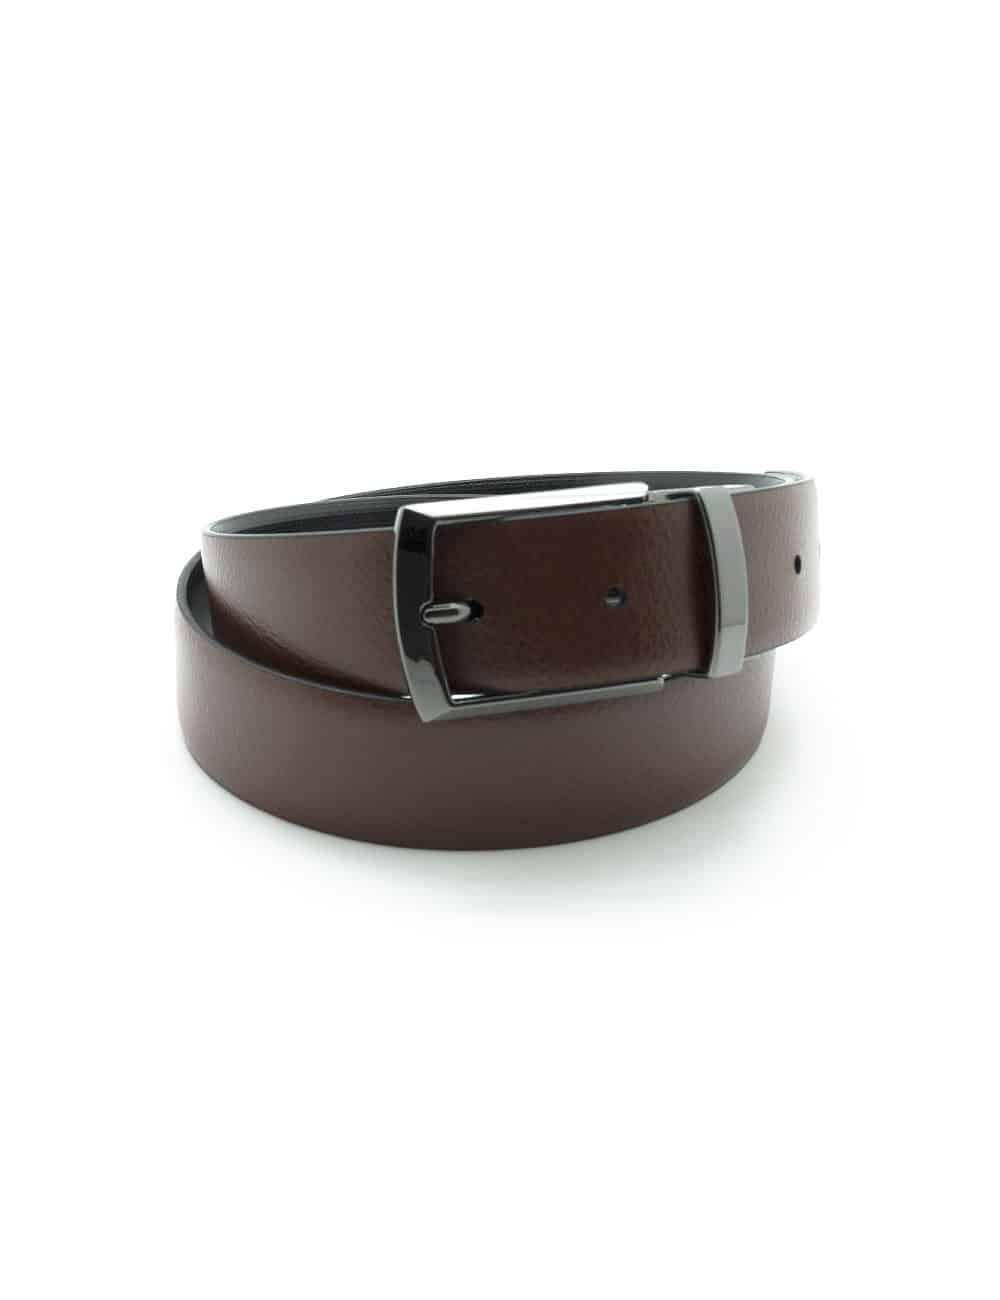 Black / Brown Textured Reversible Leather Belt LBR6.8